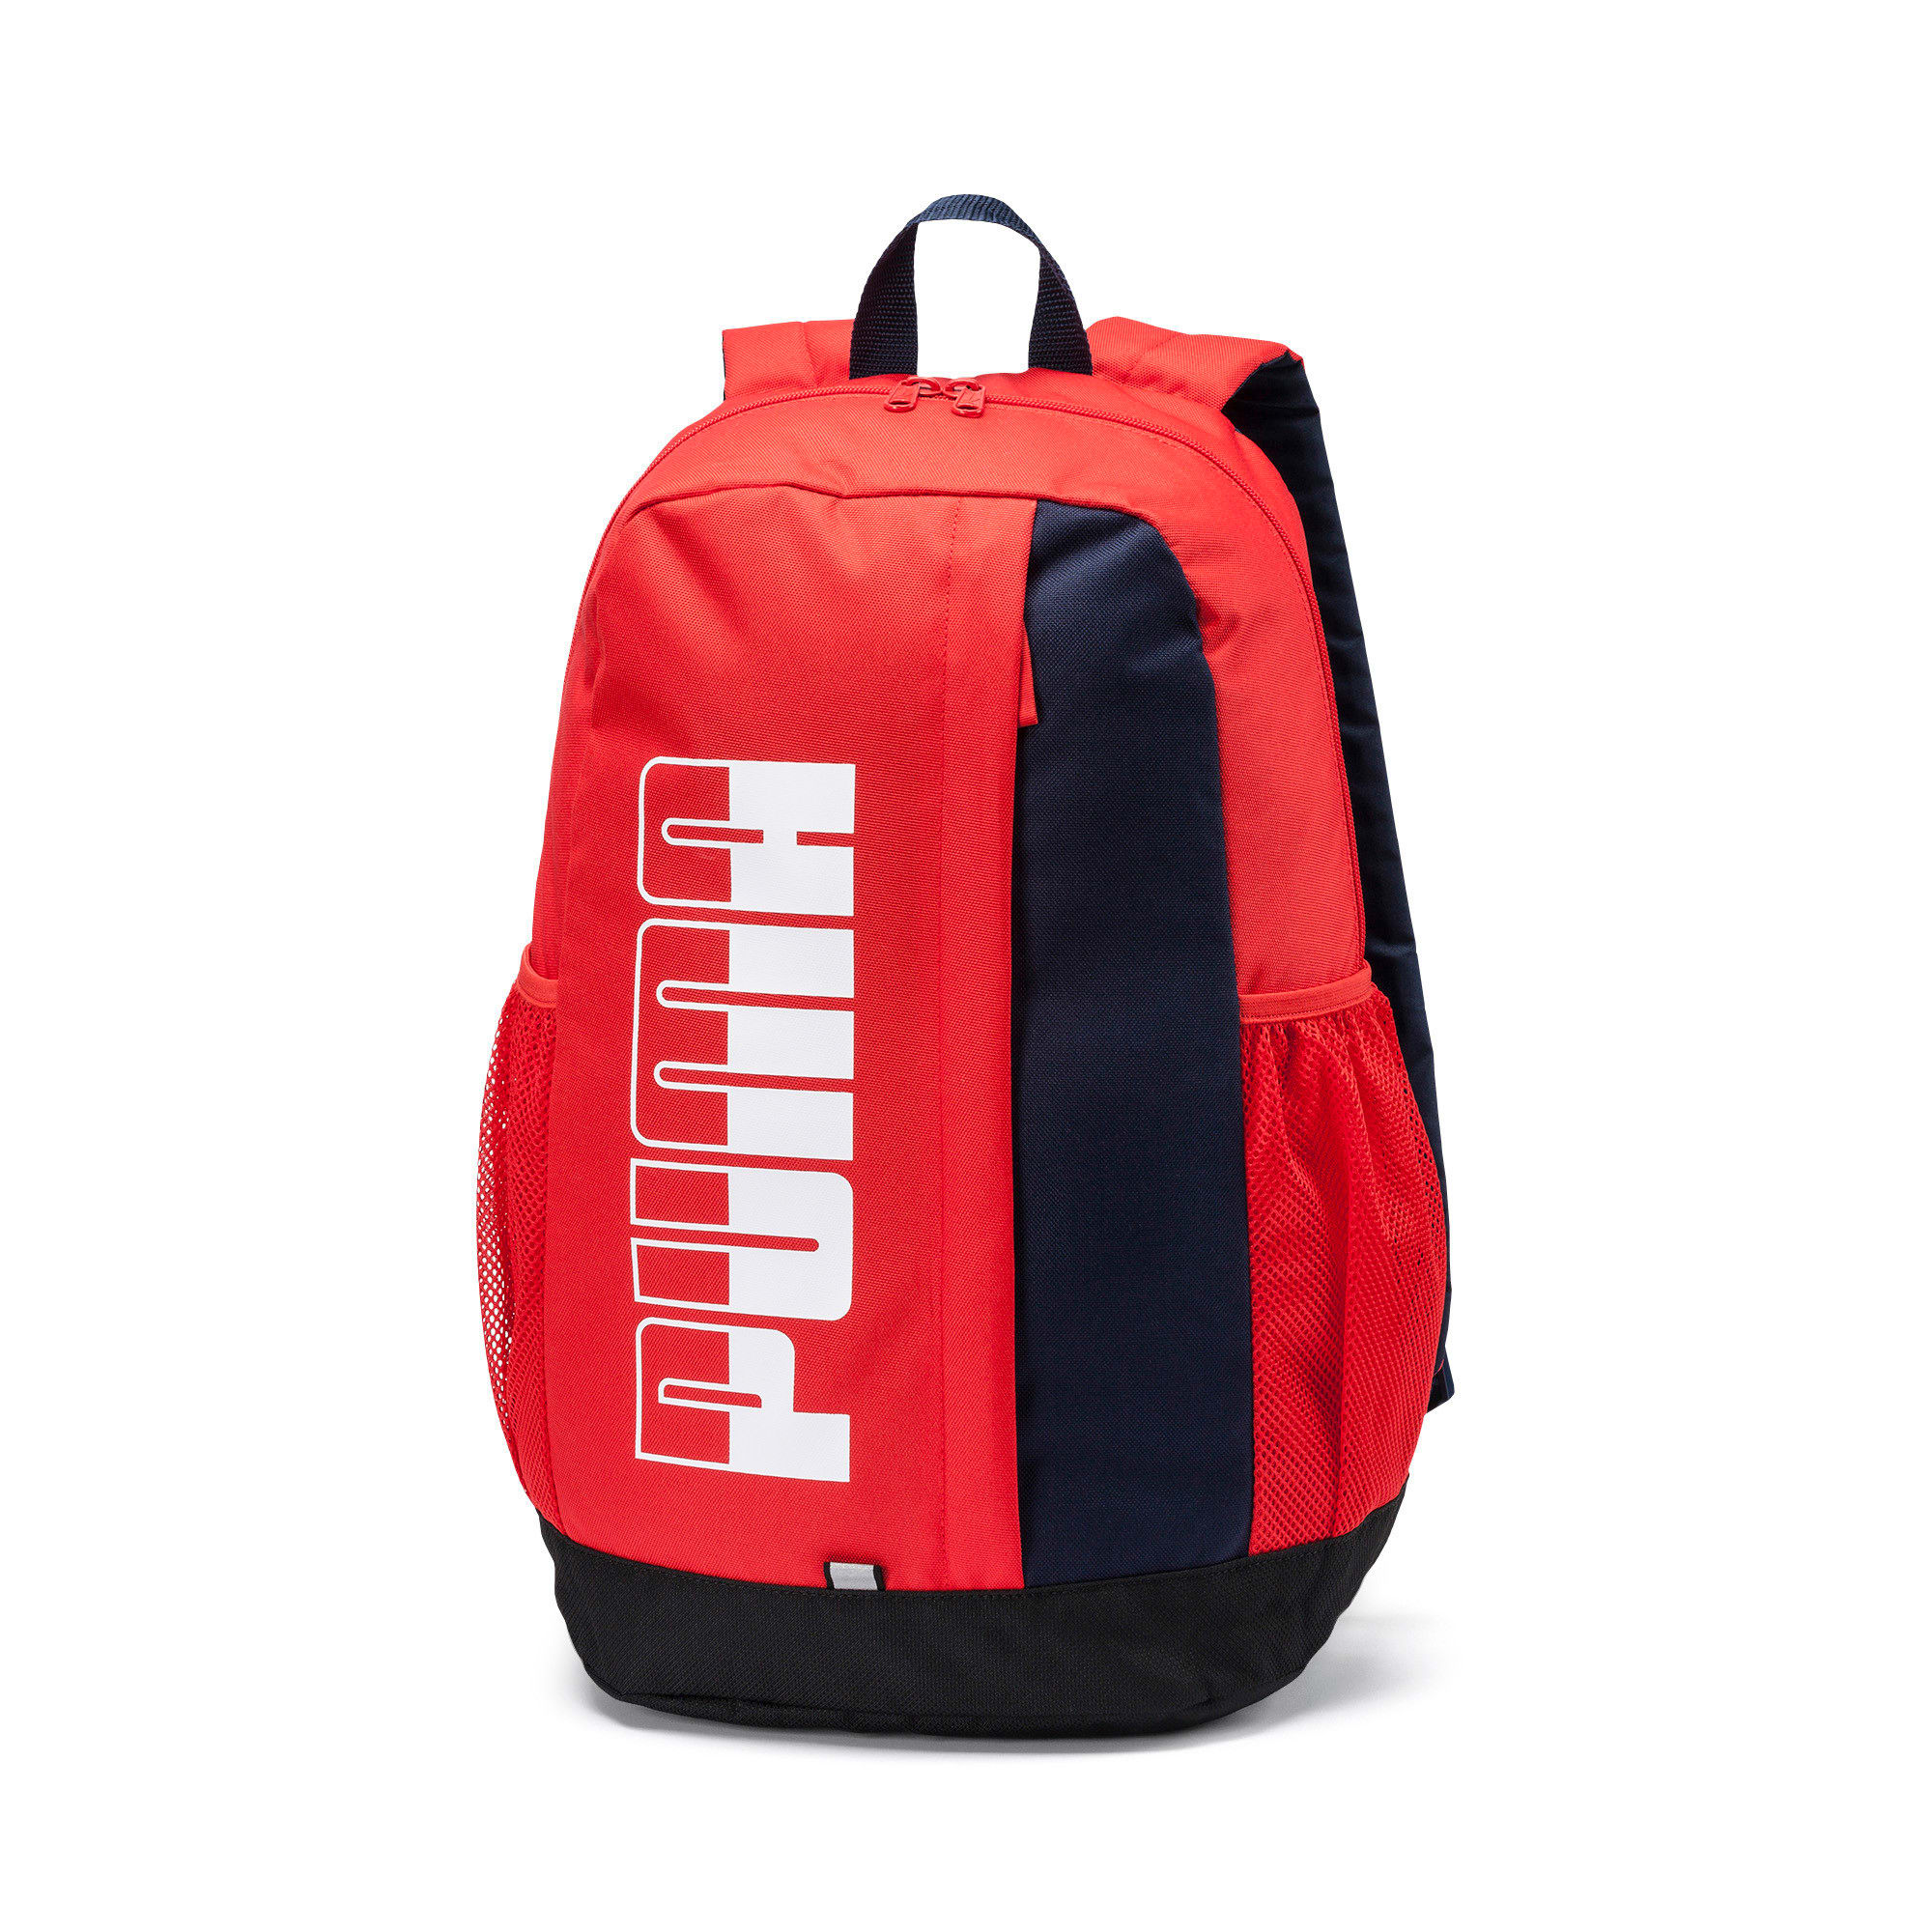 Thumbnail 1 of Plus II Backpack, High Risk Red-Peacoat, medium